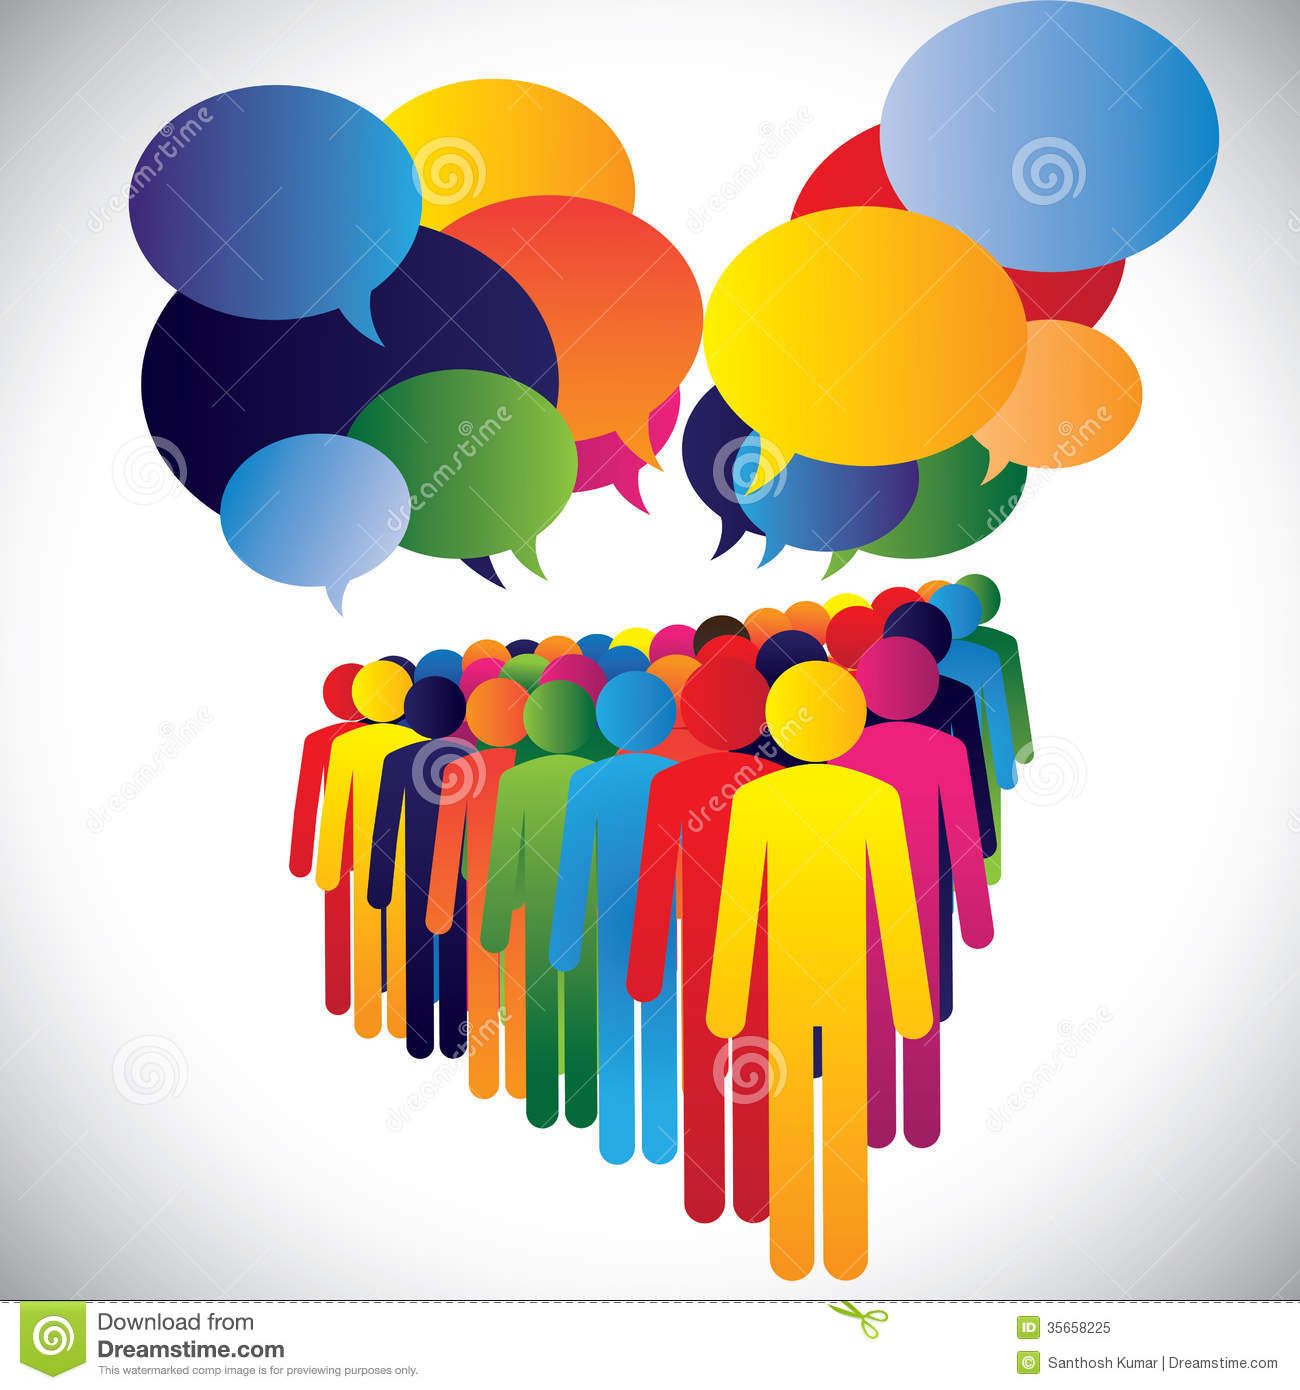 Meeting clipart employee meeting Employees 1300x1390 employees Concept of